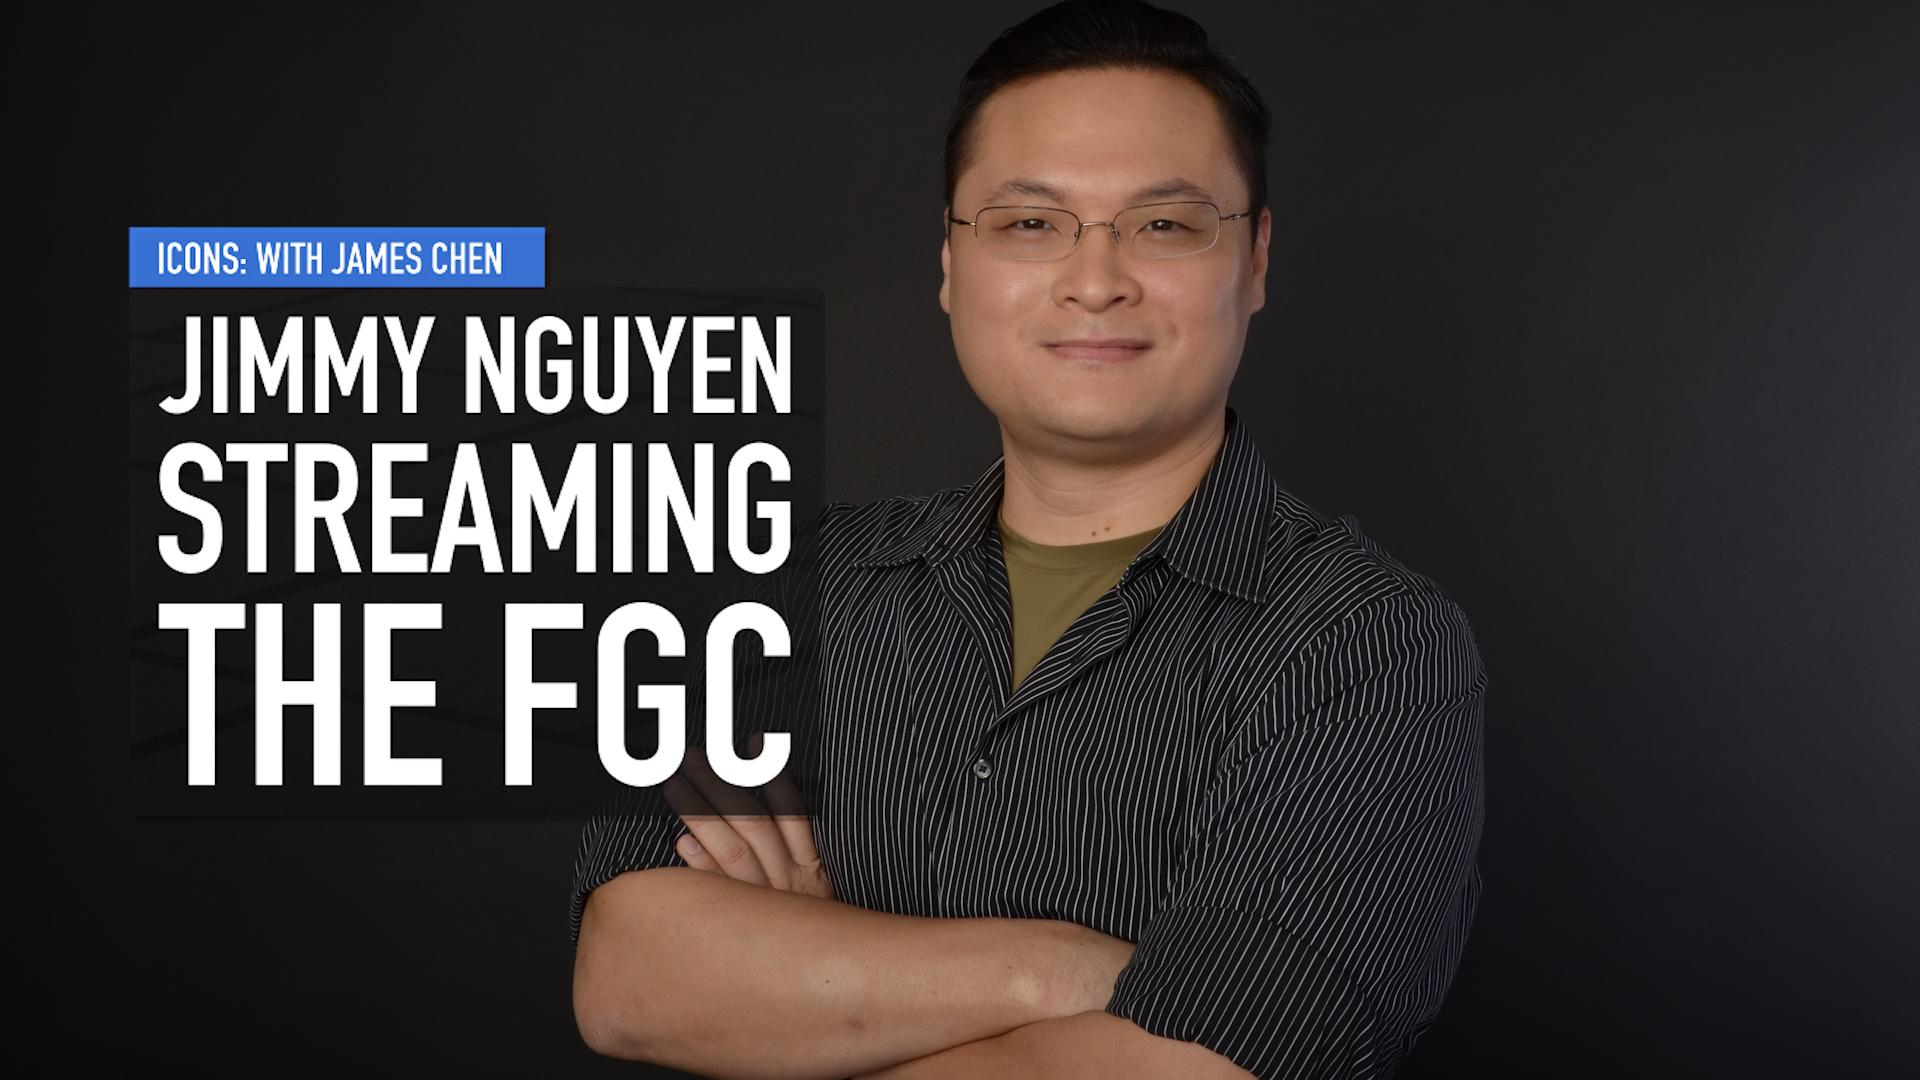 FGC Icons - Jimmy Nguyen on streaming the FGC to the world [Video]